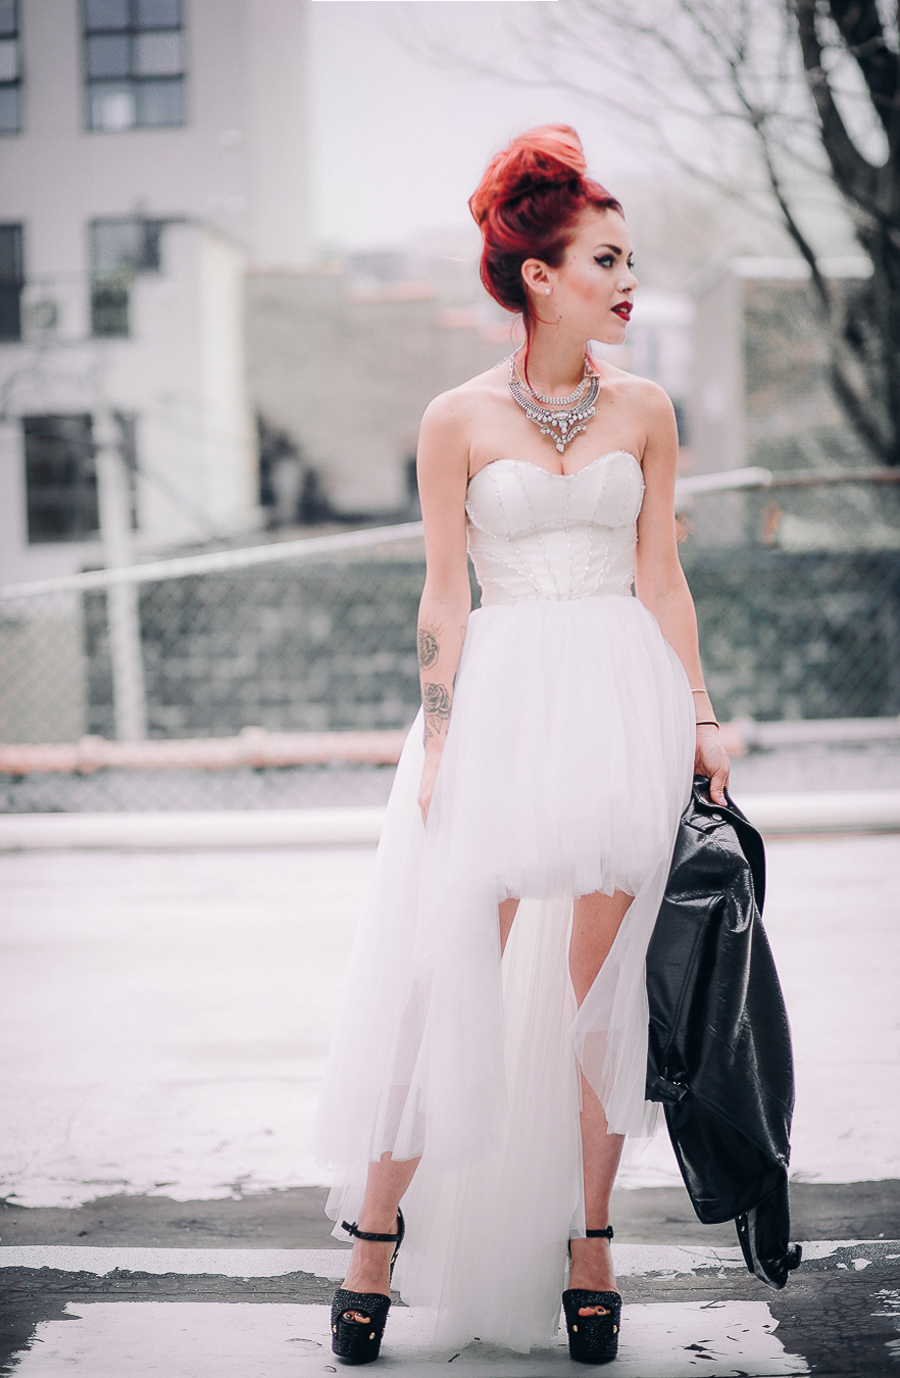 Le Happy wearing Nasty Gal Prom tulle dress and Giuseppe Zanotti pumps